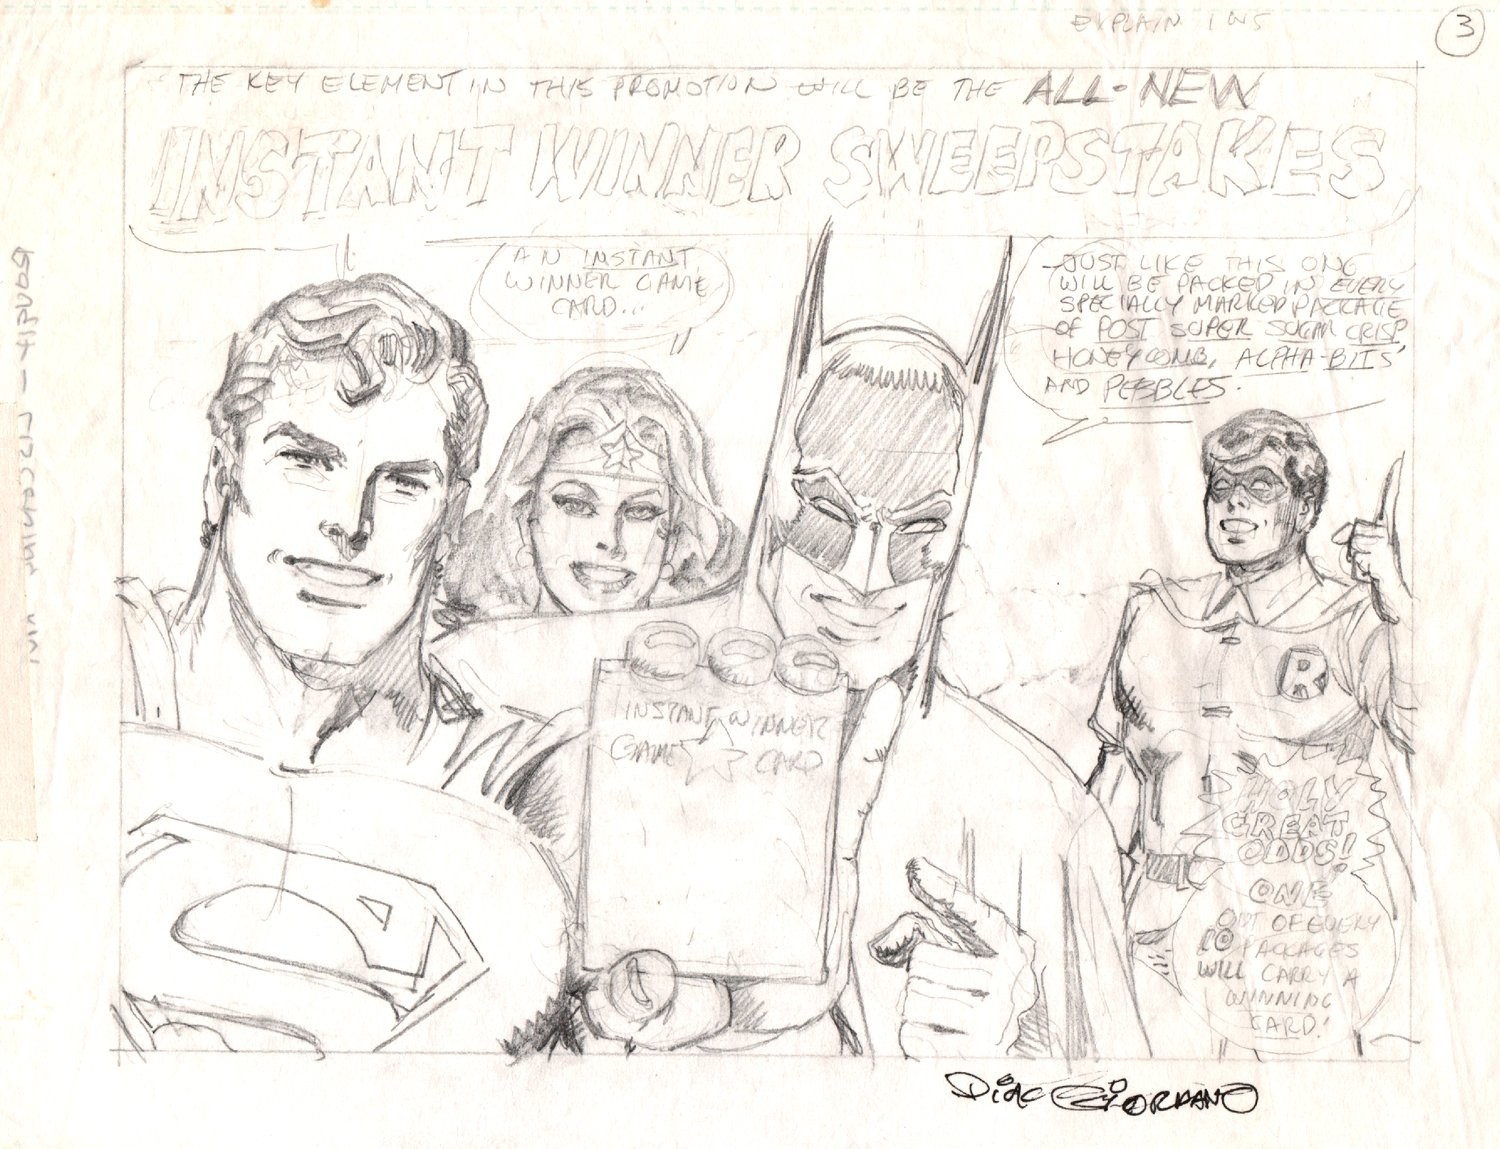 JLA Pencil Pinup Used For Post Cereal Merchandising (1970s)